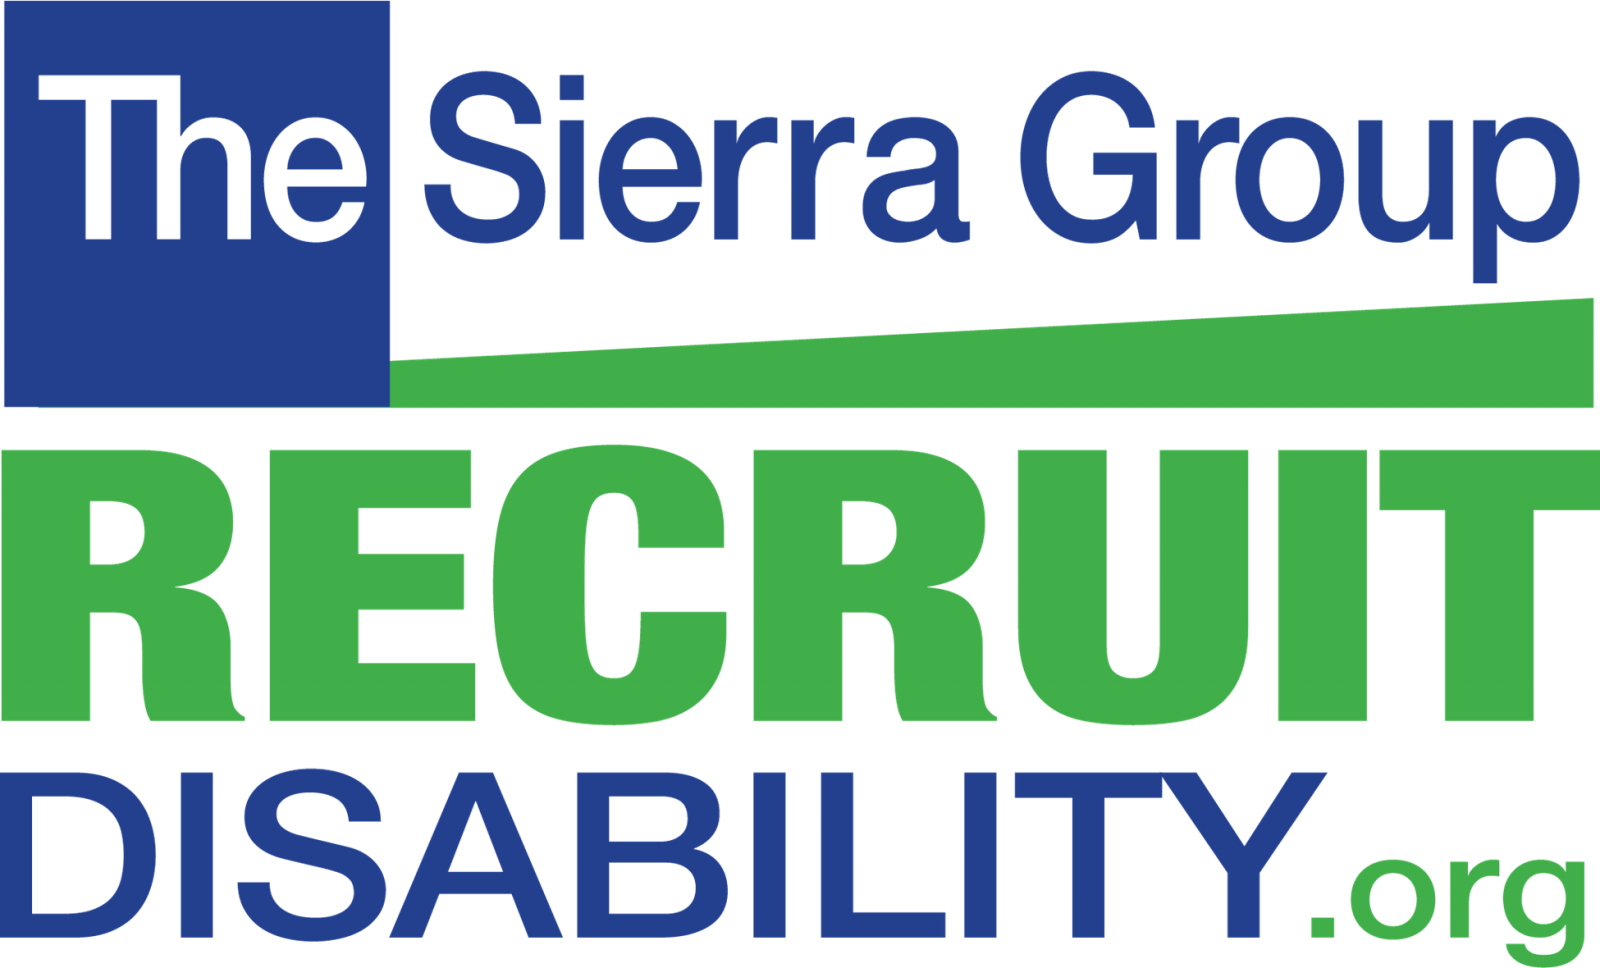 The Sierra Group Recruit Disability org blue and green logo. It is a square shape. At the top is the word the in a blue box and then to the right of that in blue it says Sierra Group. Below that is the green bold word recruit and below that the words disability in blue and org in green.